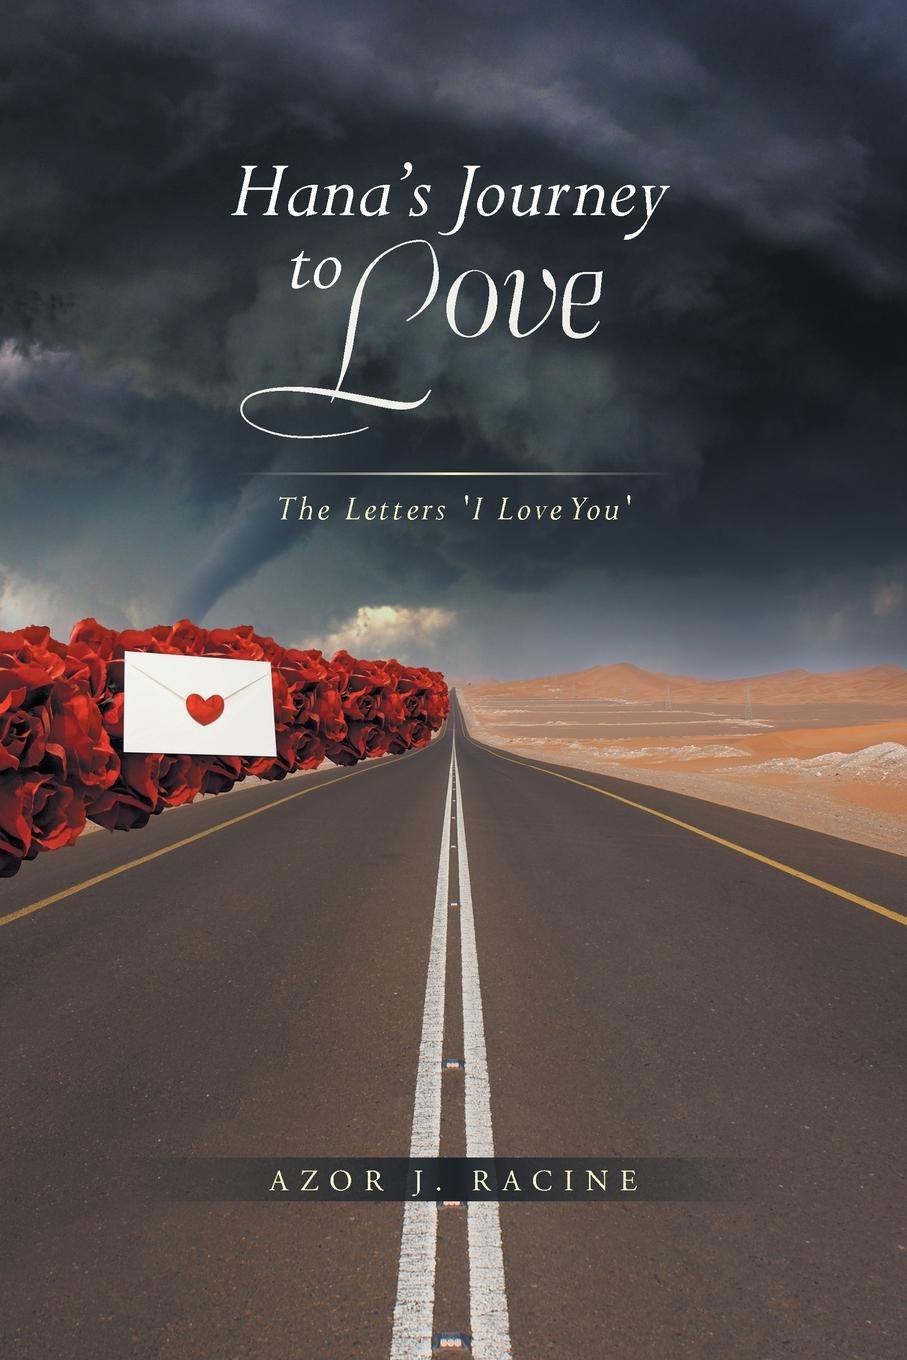 Azor Joswalette Hana's Journey to Love. The Letters: I Love You love letters 2019 09 25t19 00